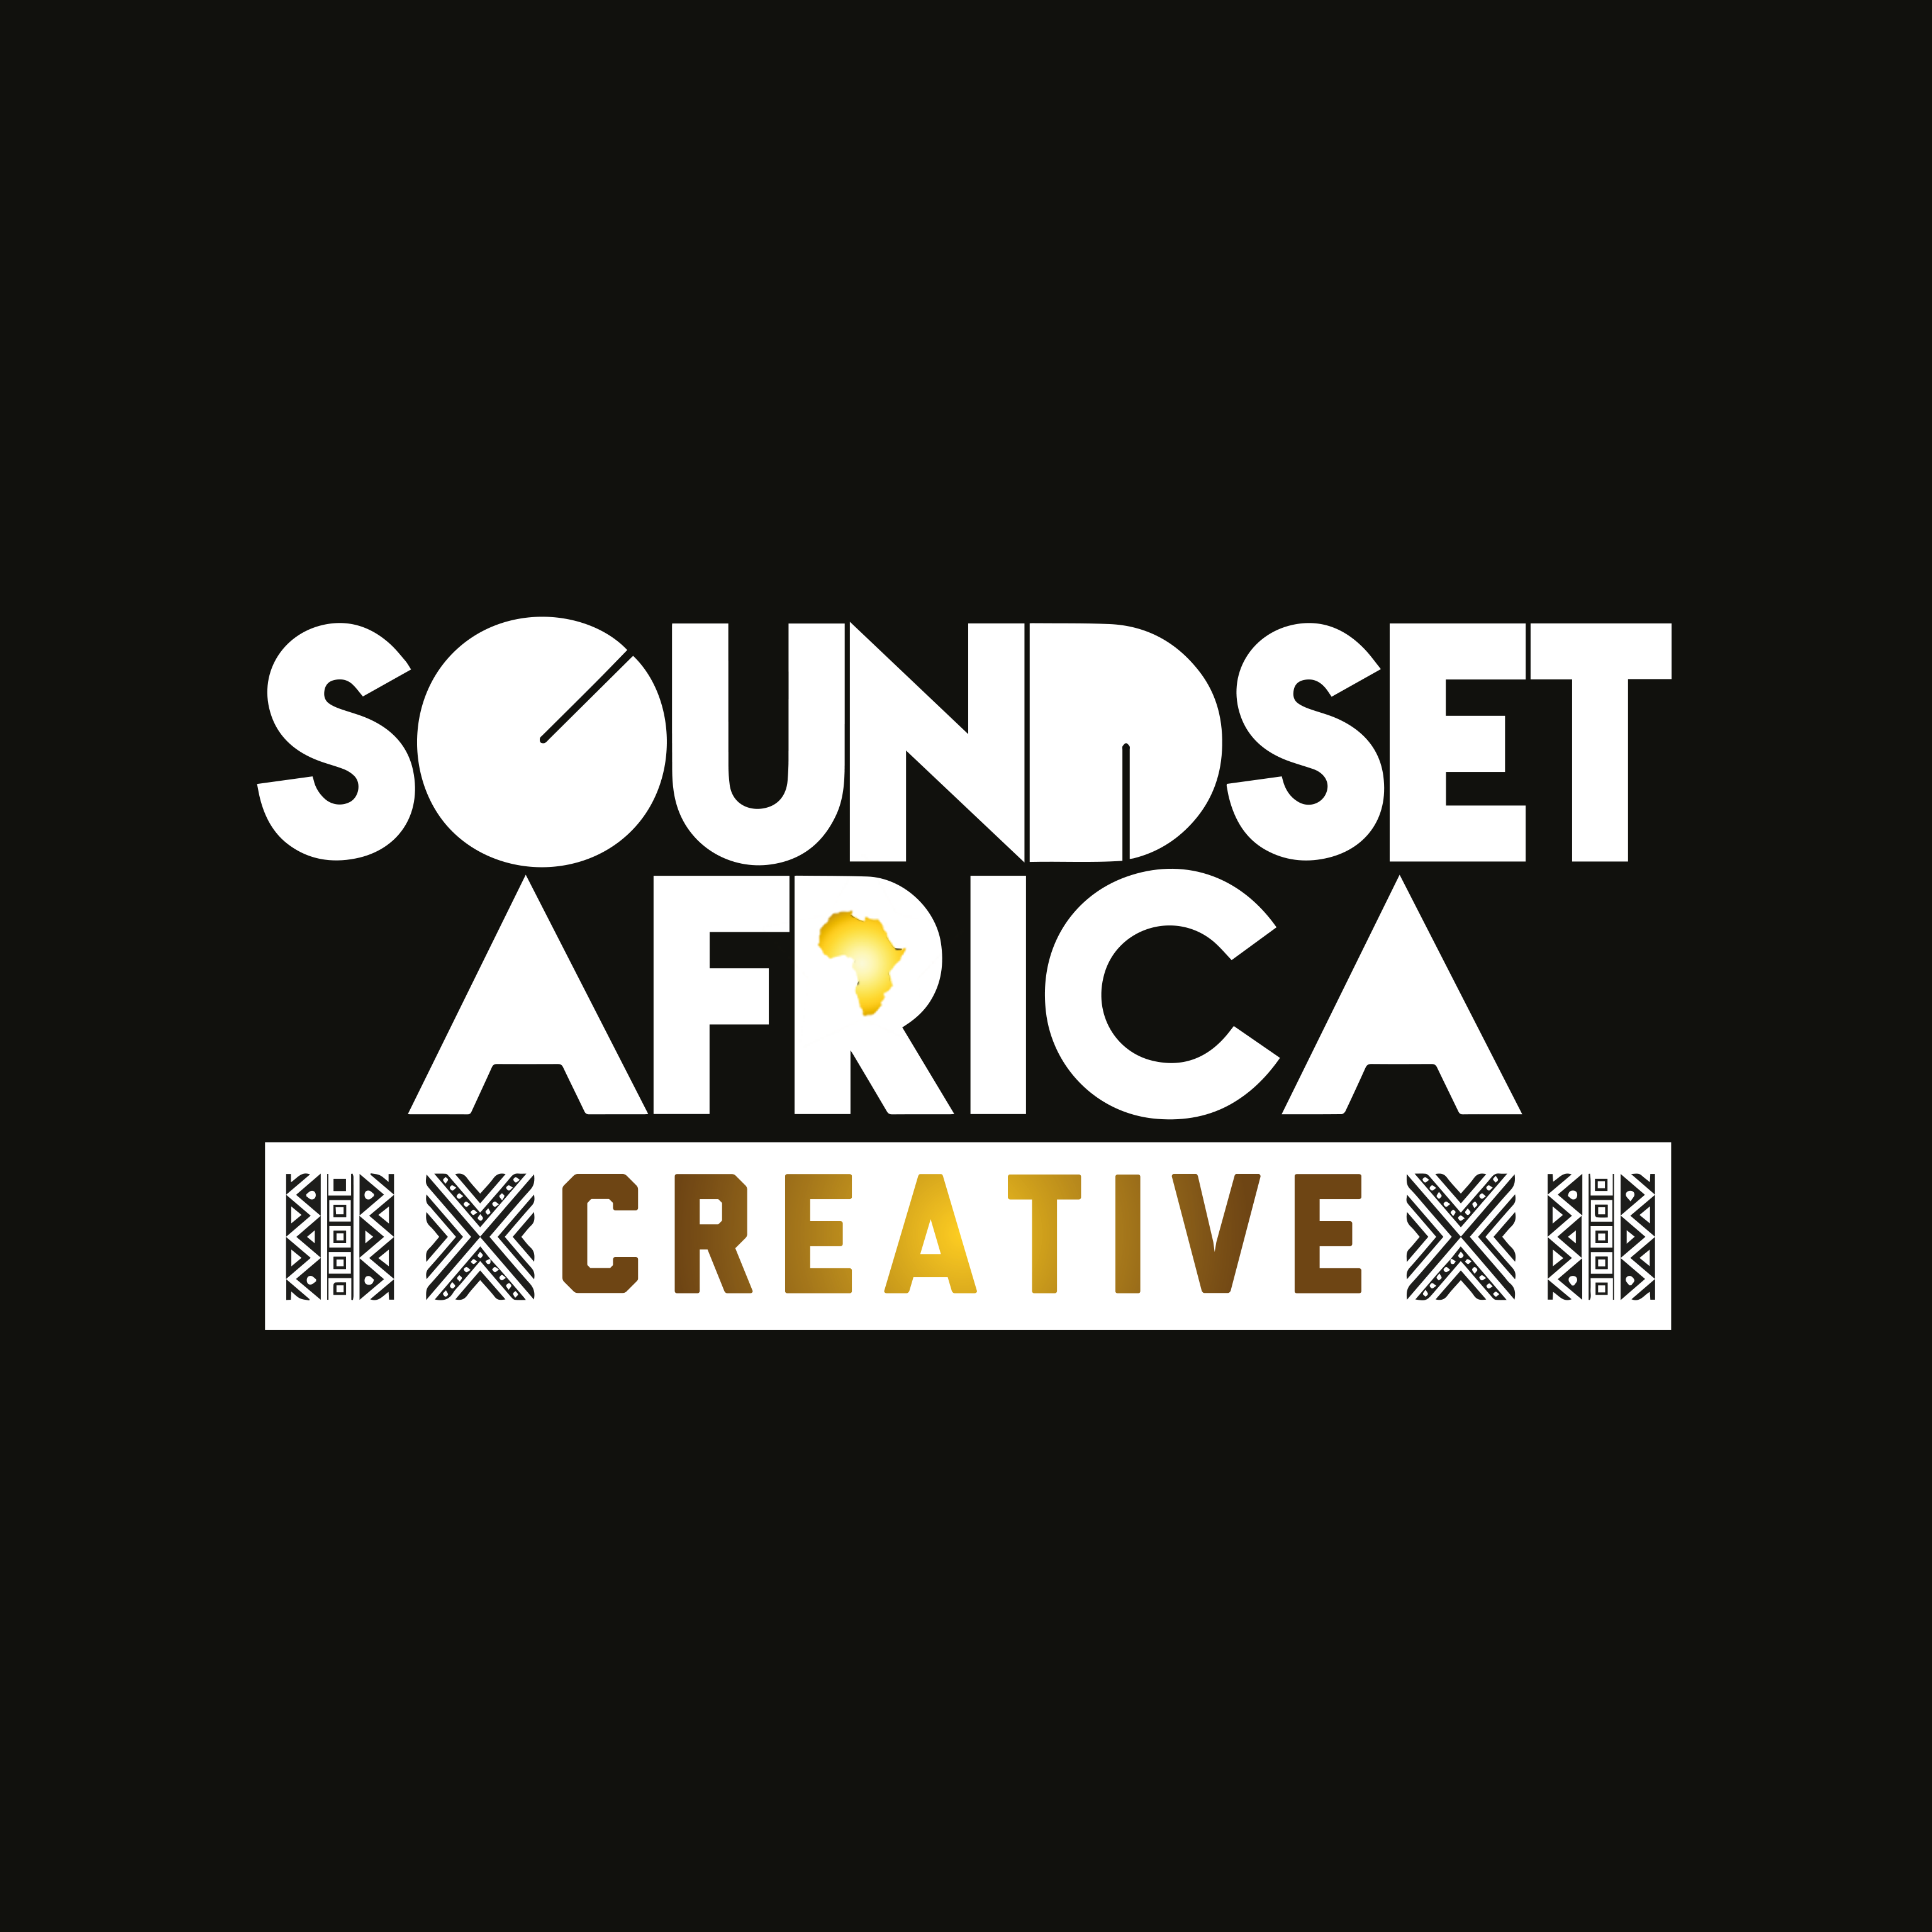 SOUNDSET AFRICA CREATIVE